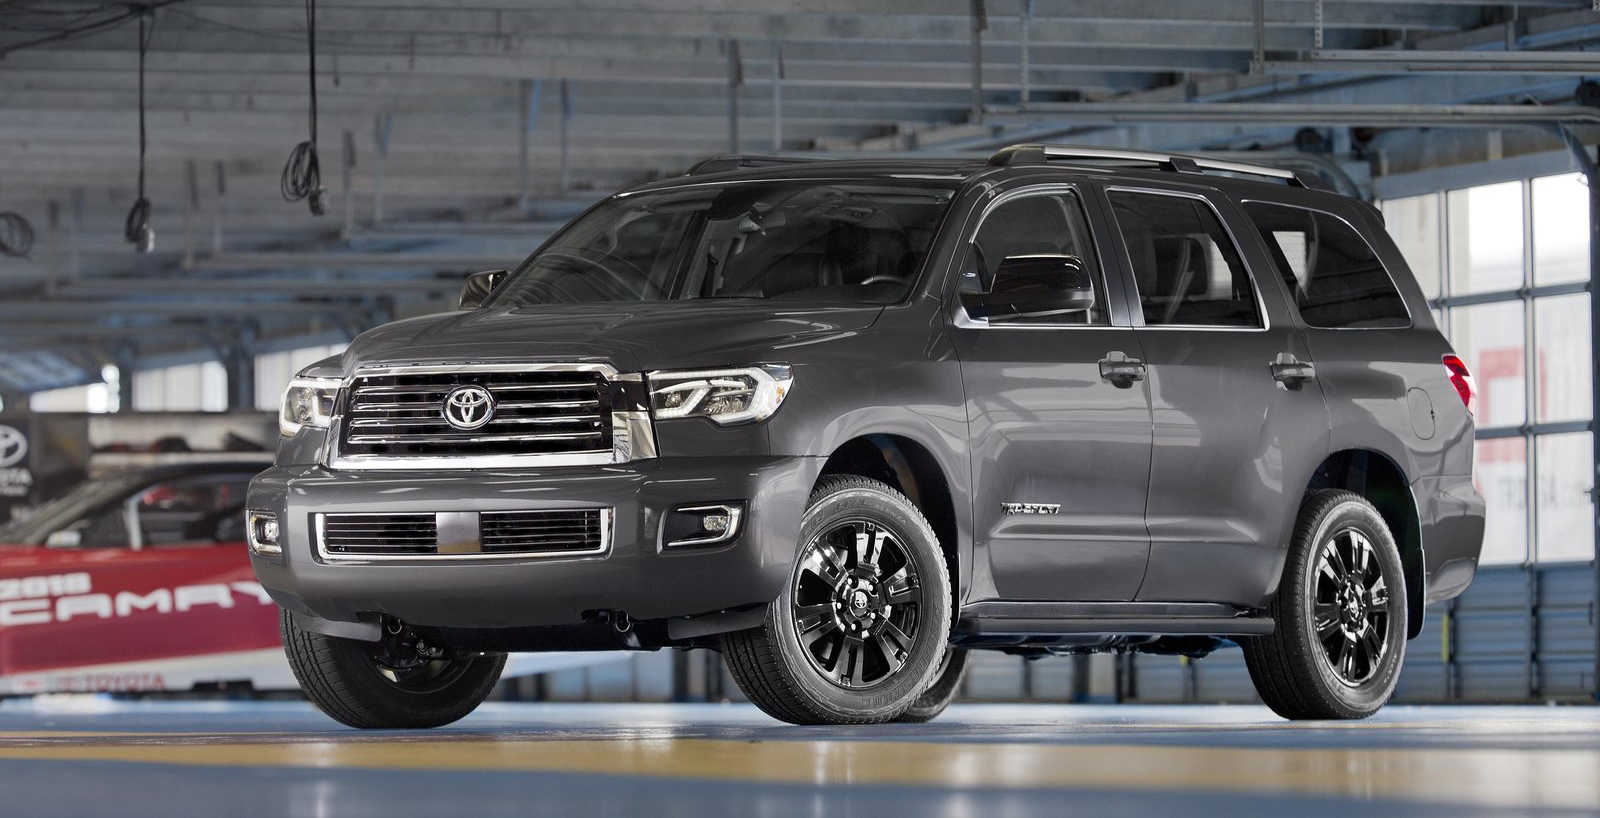 2018 Toyota Tundra and Sequoia TRD Sport variants Image 613827